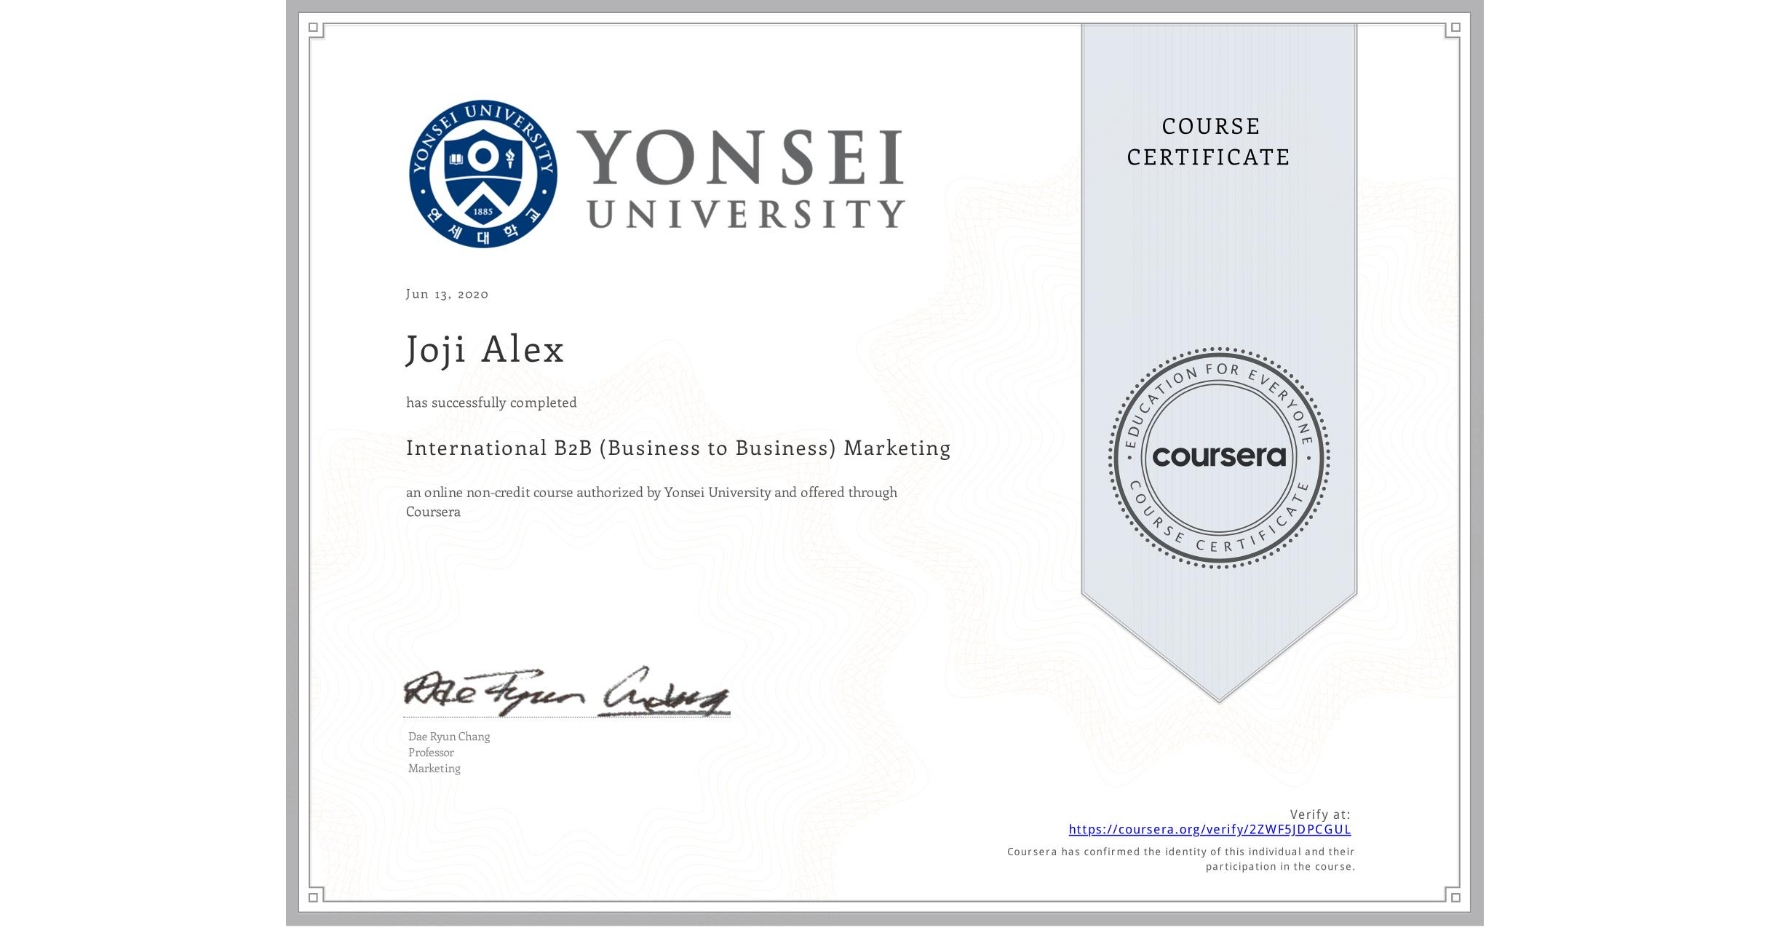 View certificate for Joji Alex, International B2B (Business to Business) Marketing, an online non-credit course authorized by Yonsei University and offered through Coursera